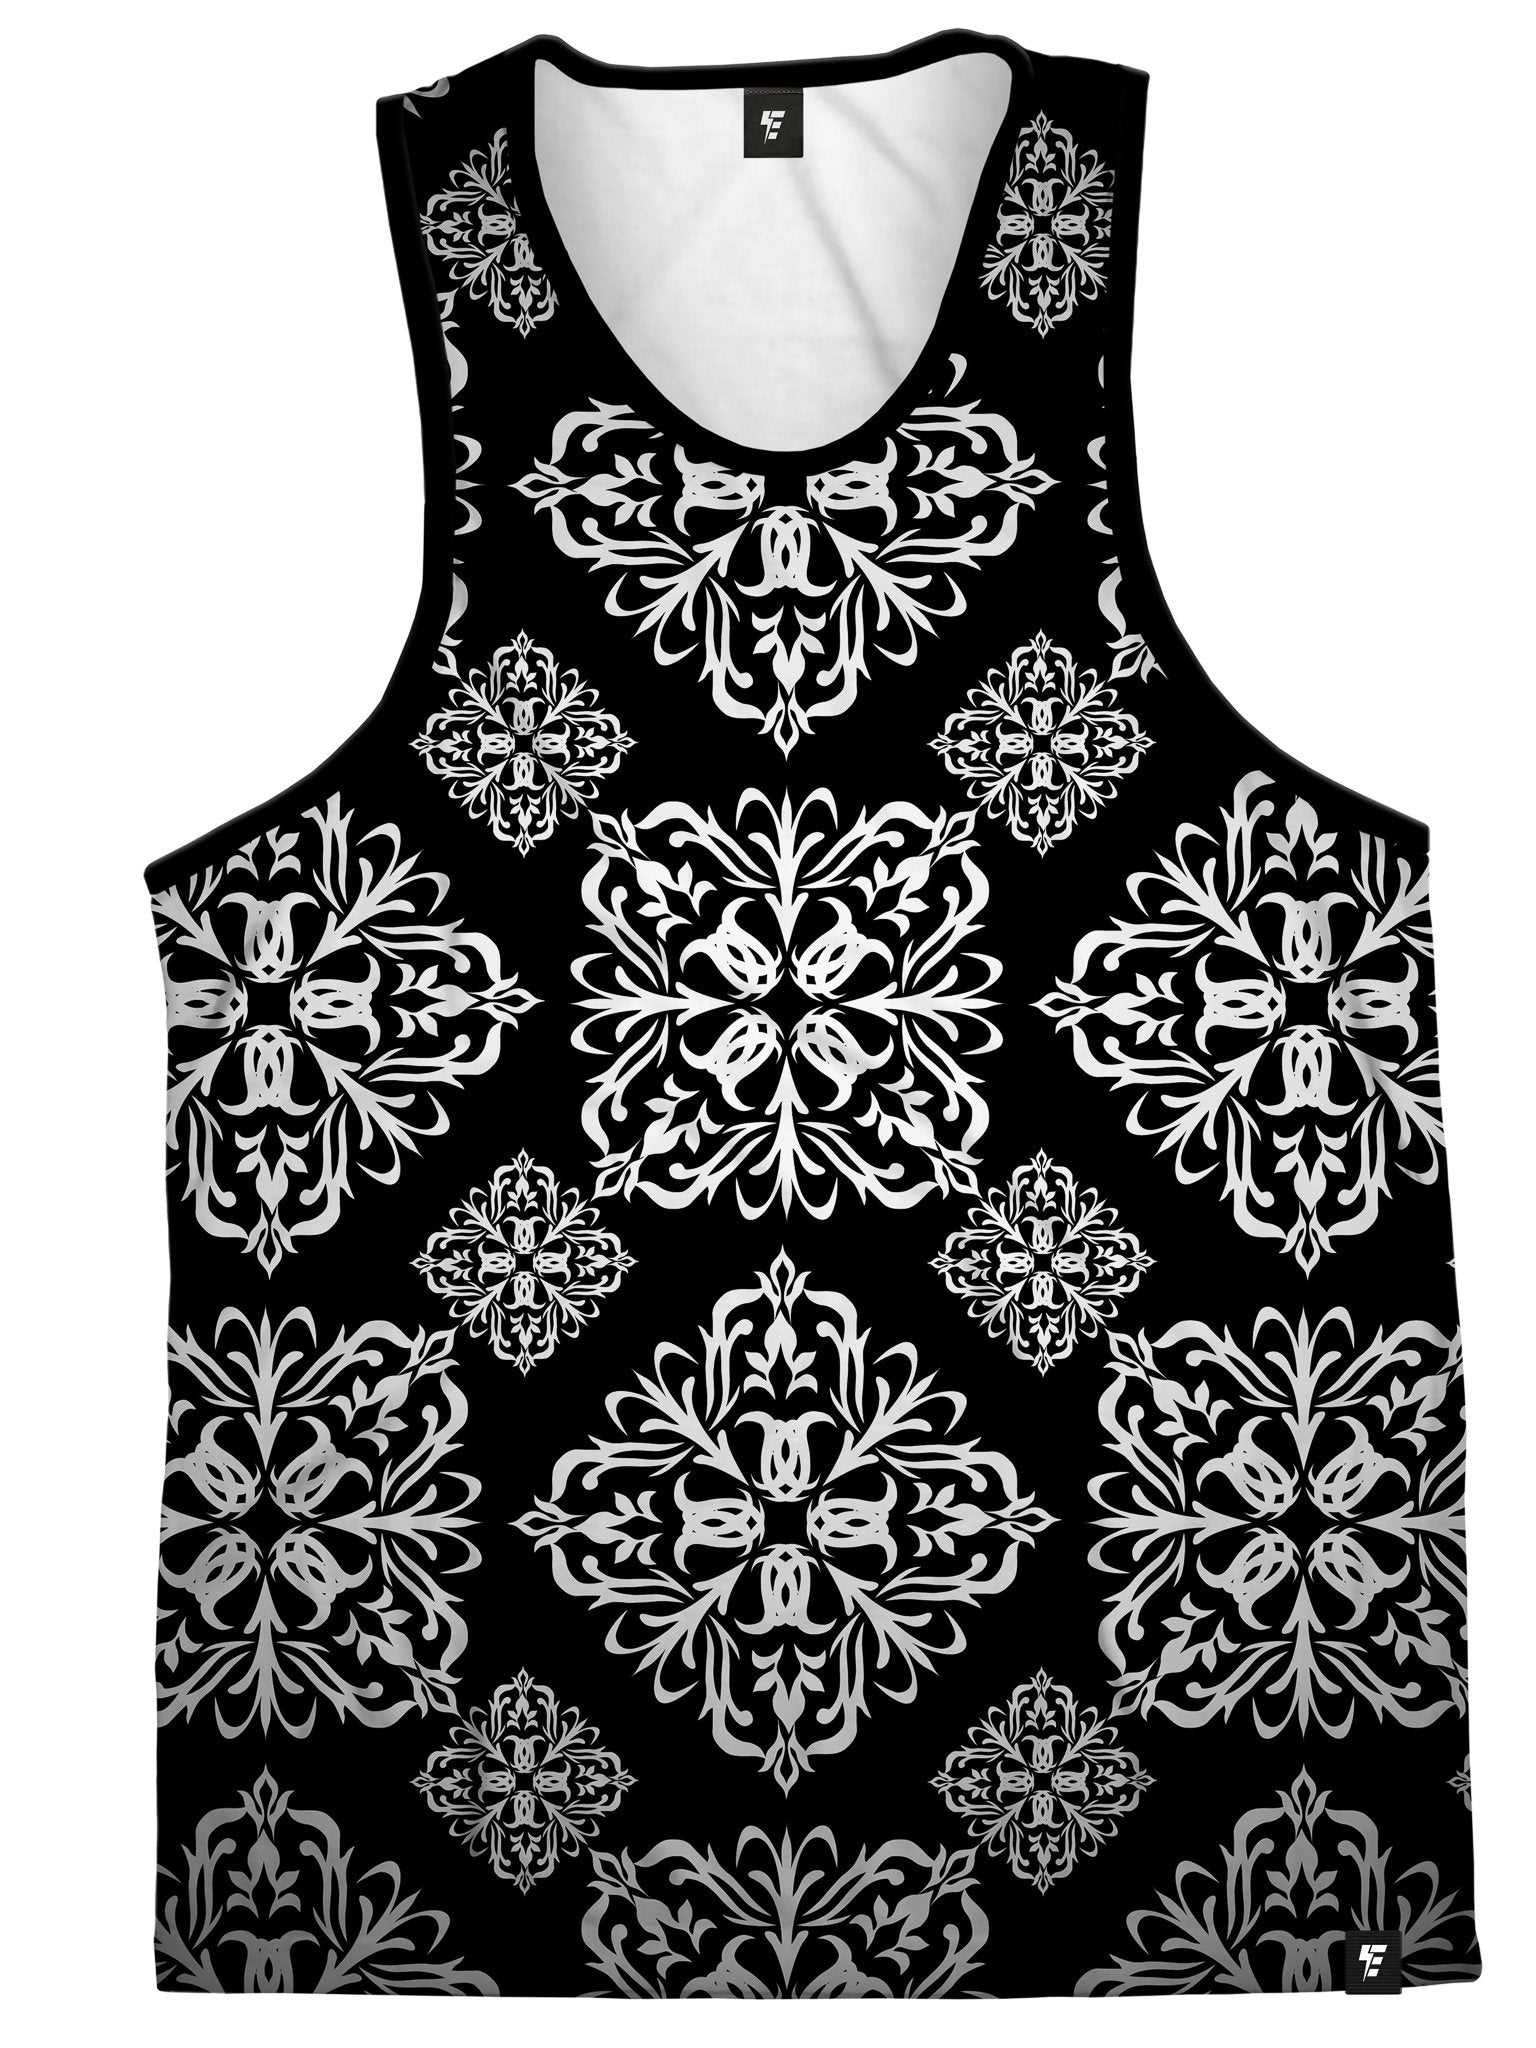 Silver Lining Tank Top Tank Tops Electro Threads